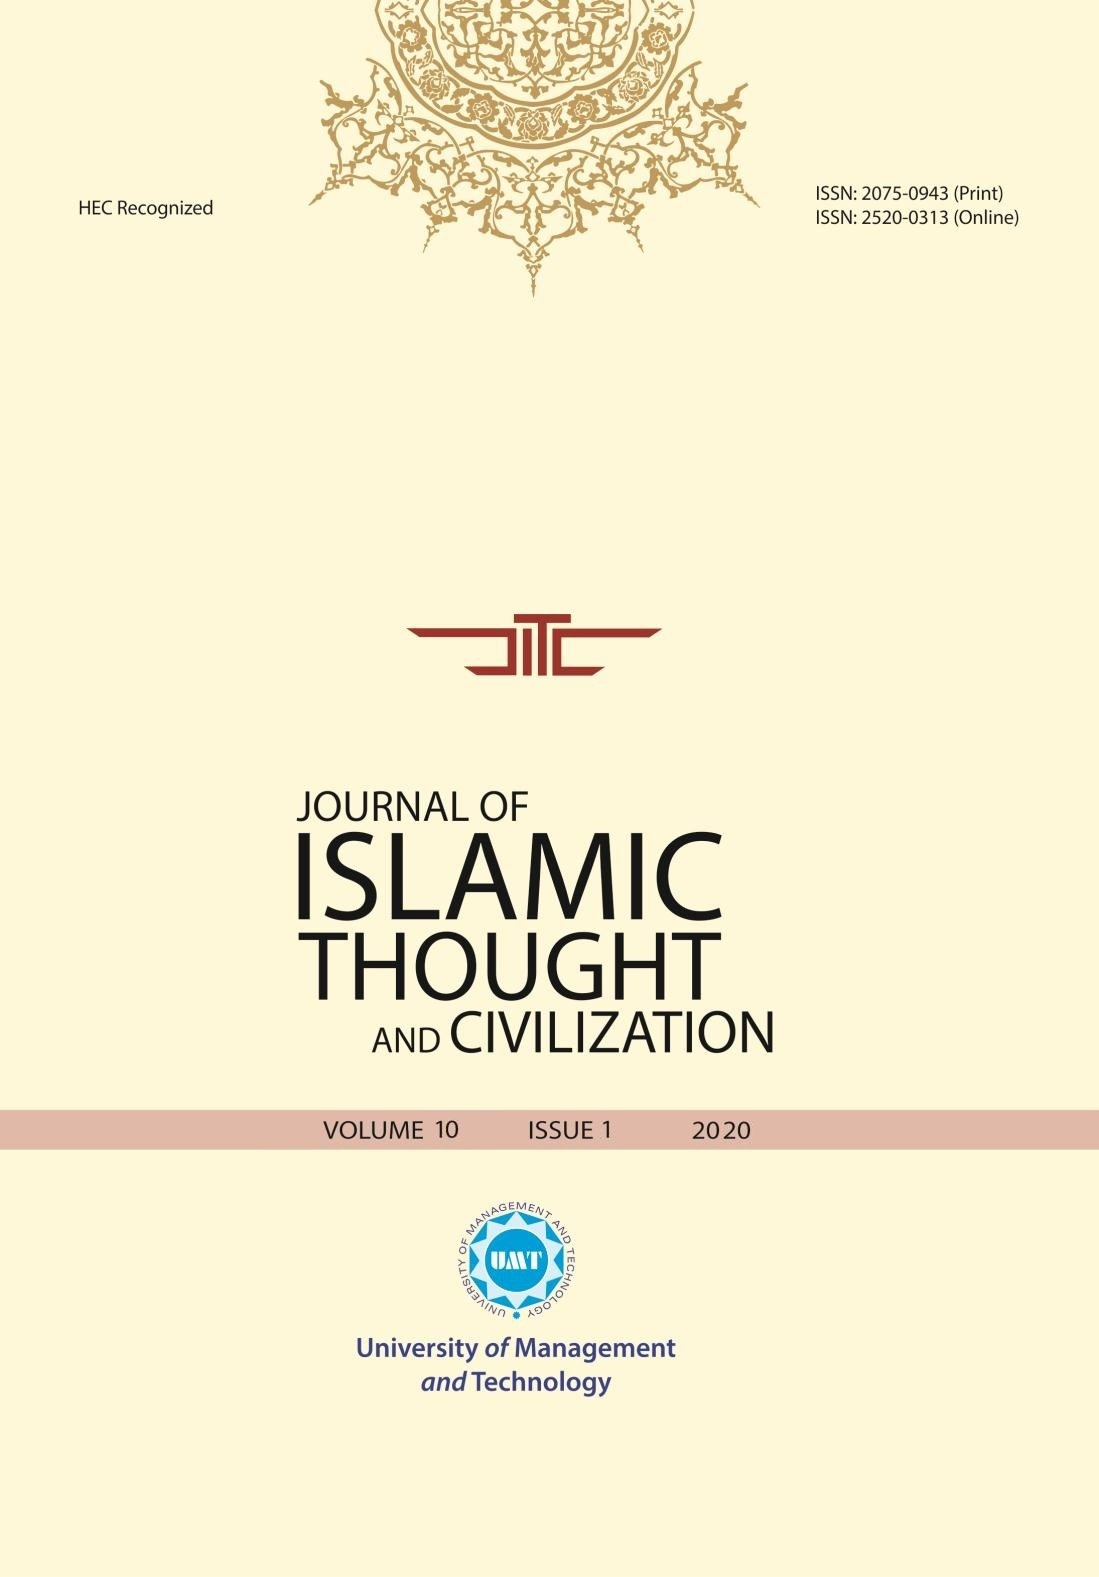 Journal of Islamic Thought and Civilization